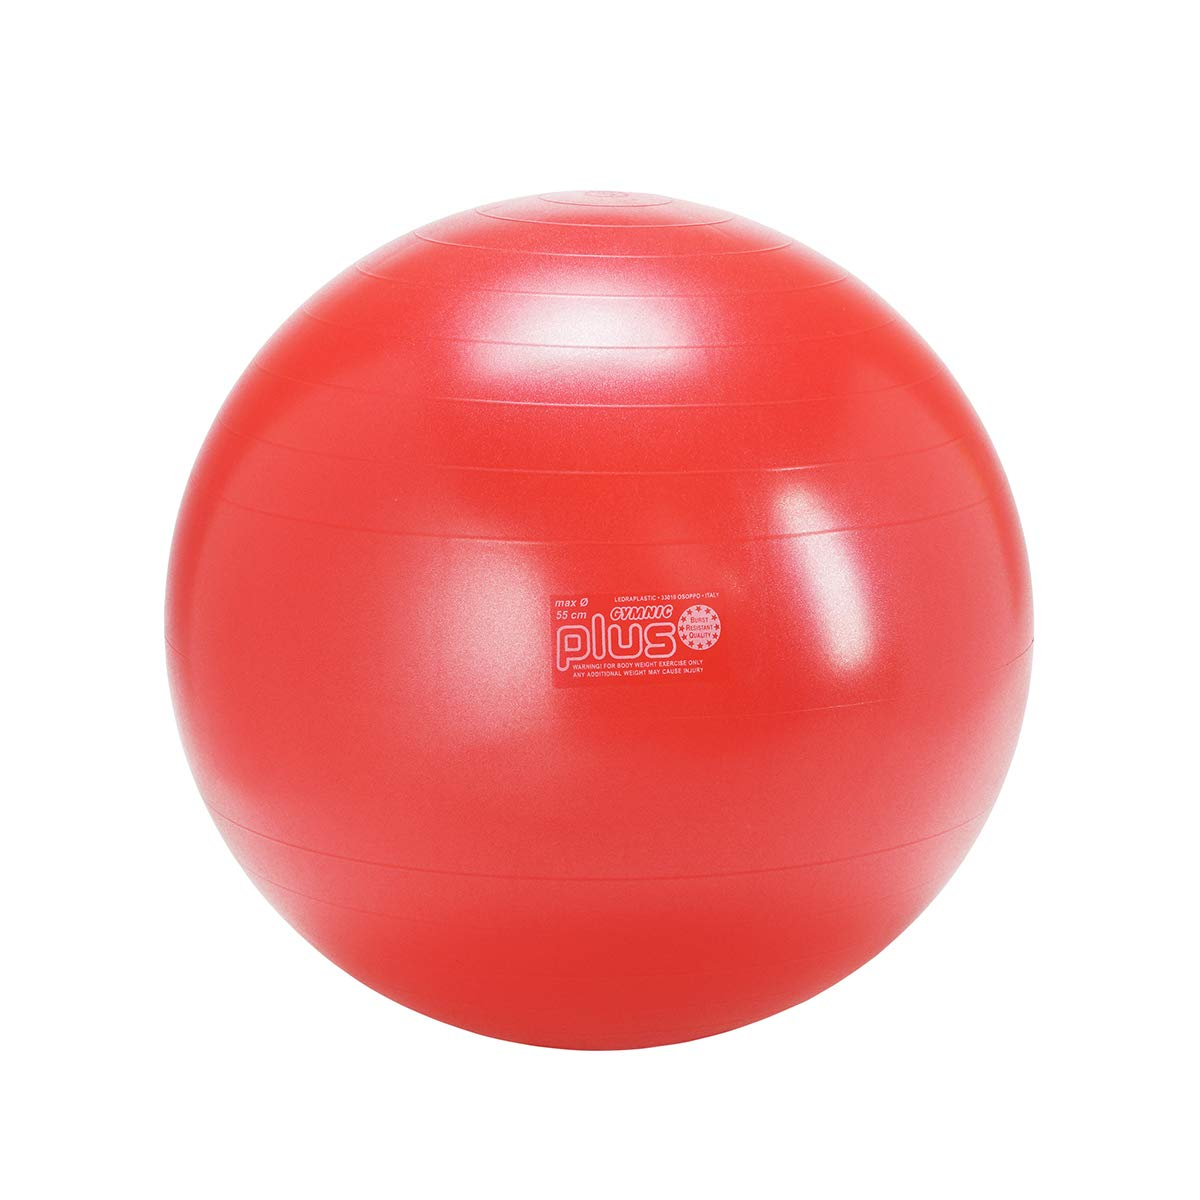 Gymnic Classic Plus Burst-Resistant Exercise Ball, Red 55 cm